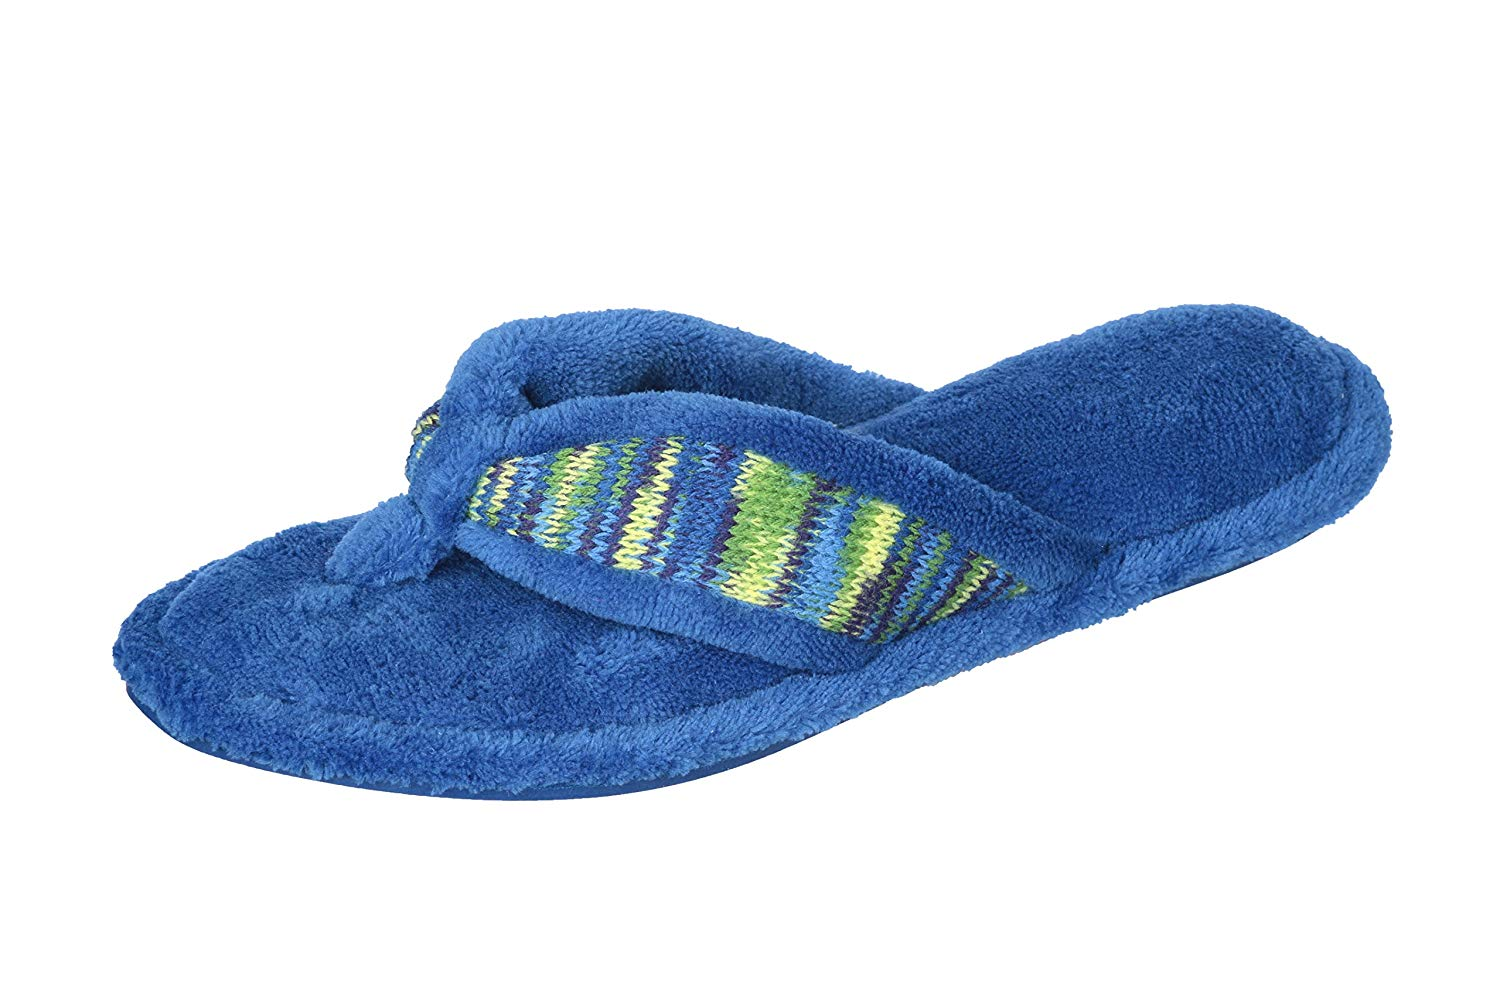 b09c19a3d06 Get Quotations · Joan Vass Woman s Terry Fuzzy Spa Flip Flop Slippers  Elegant Style